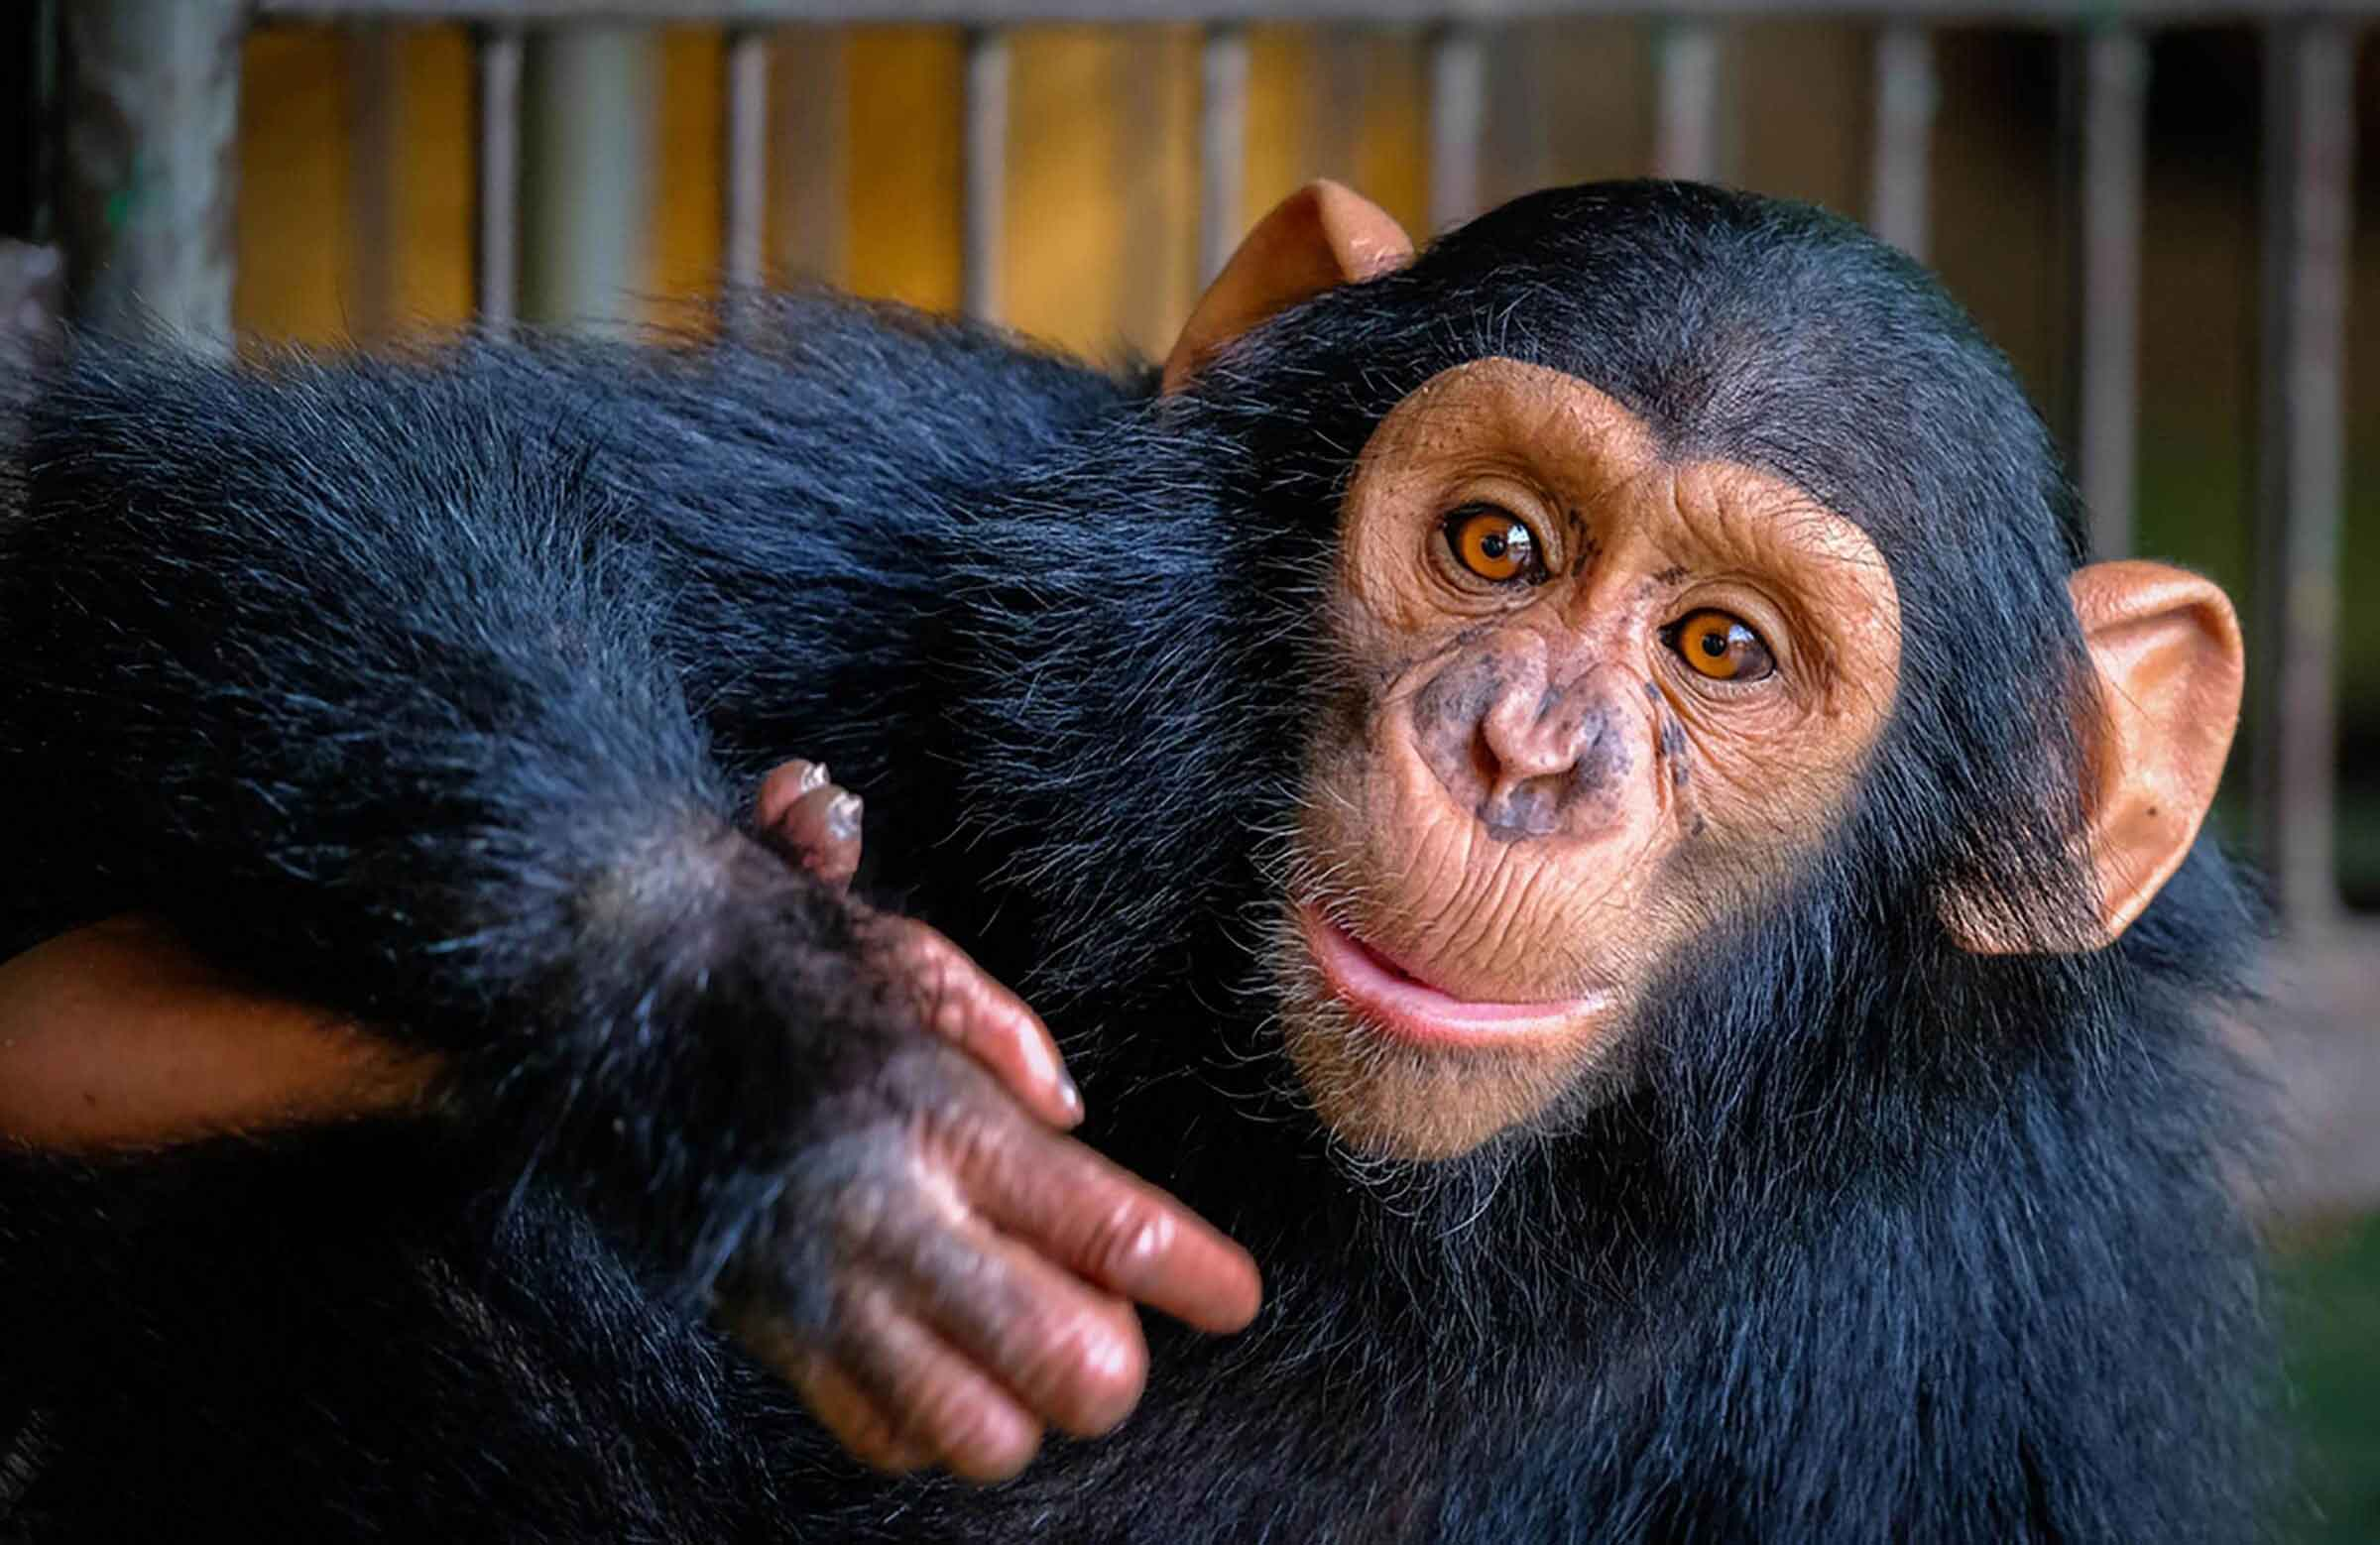 Chimpanzees are very similar to humans